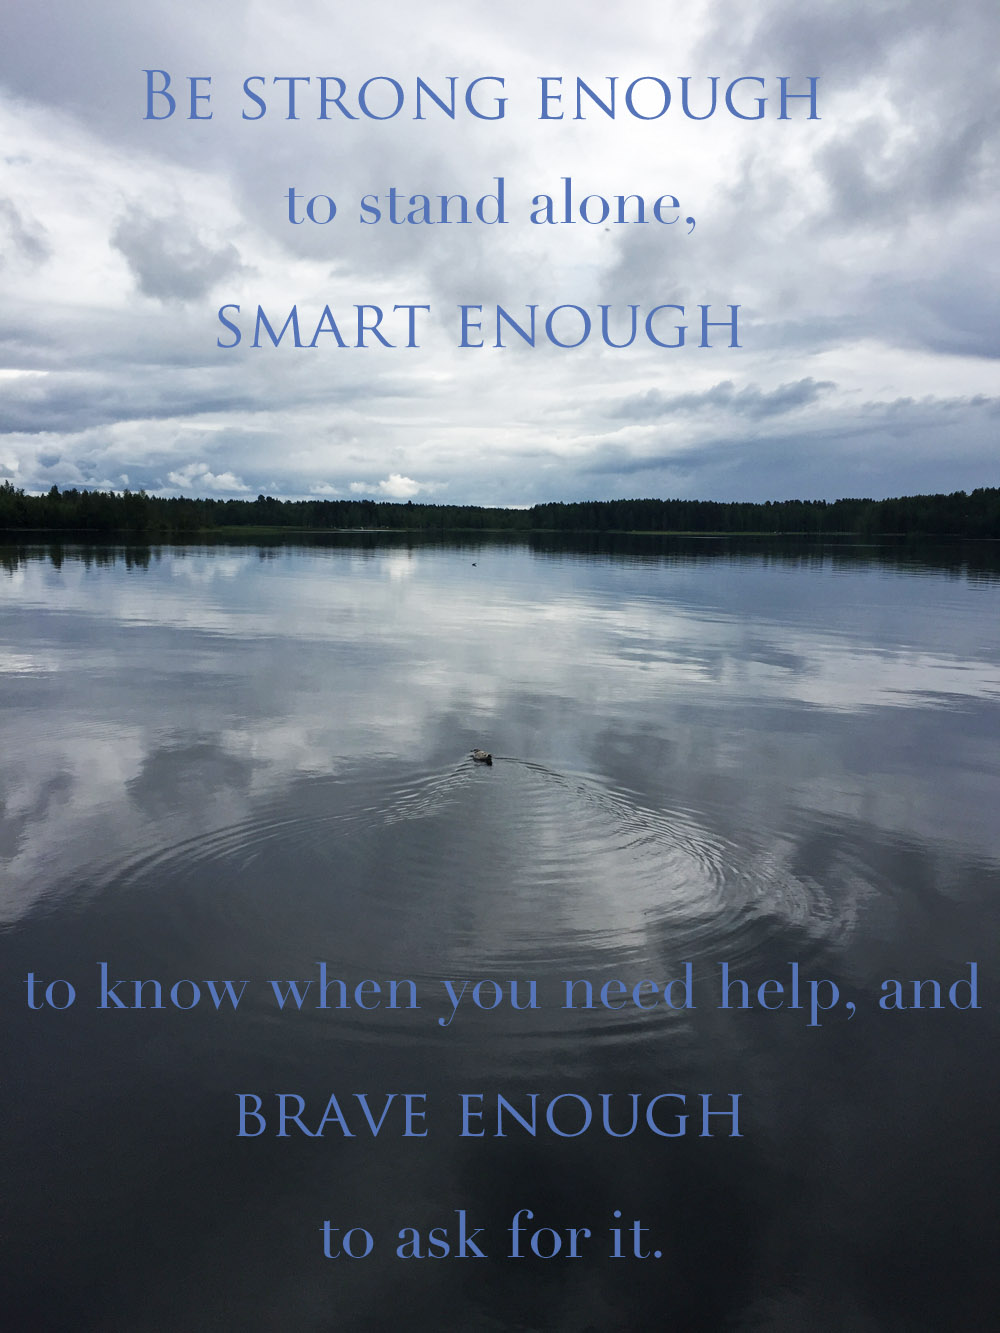 be-strong-enough-to-stand-alone-quote